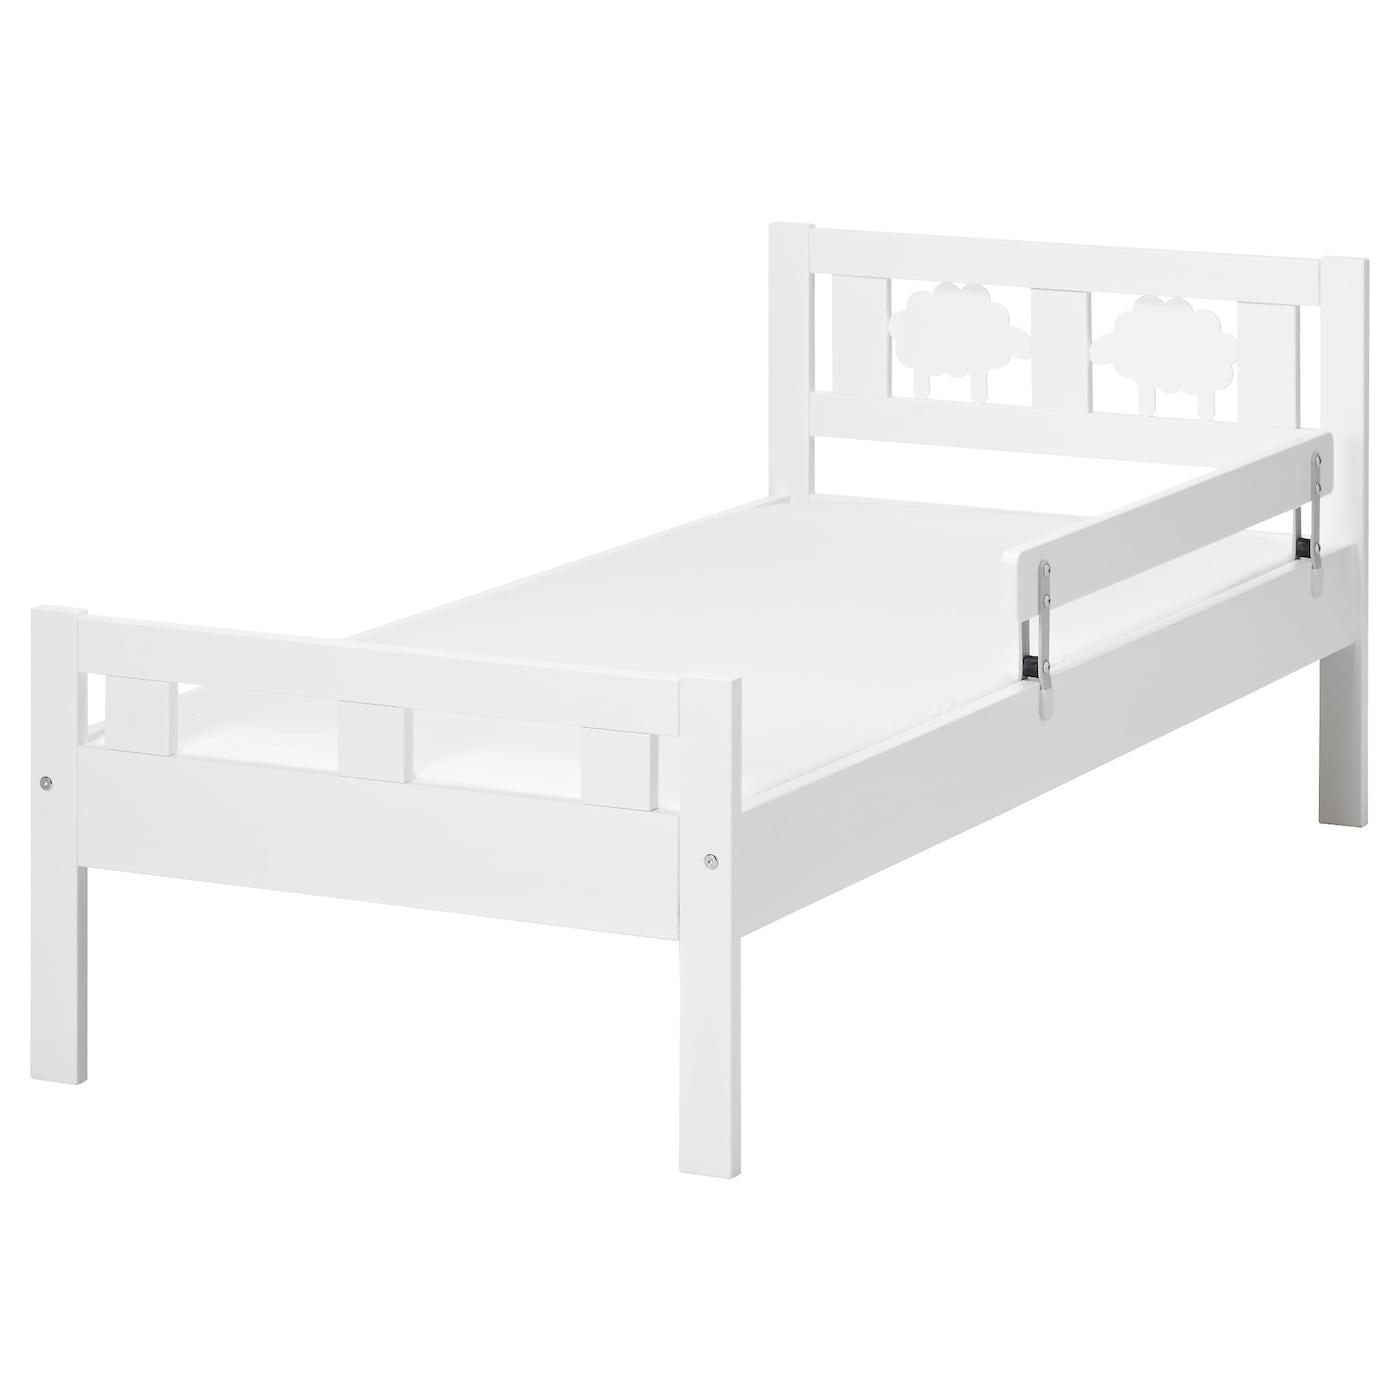 kritter cadre lit sommier lattes blanc 70x160 cm ikea. Black Bedroom Furniture Sets. Home Design Ideas